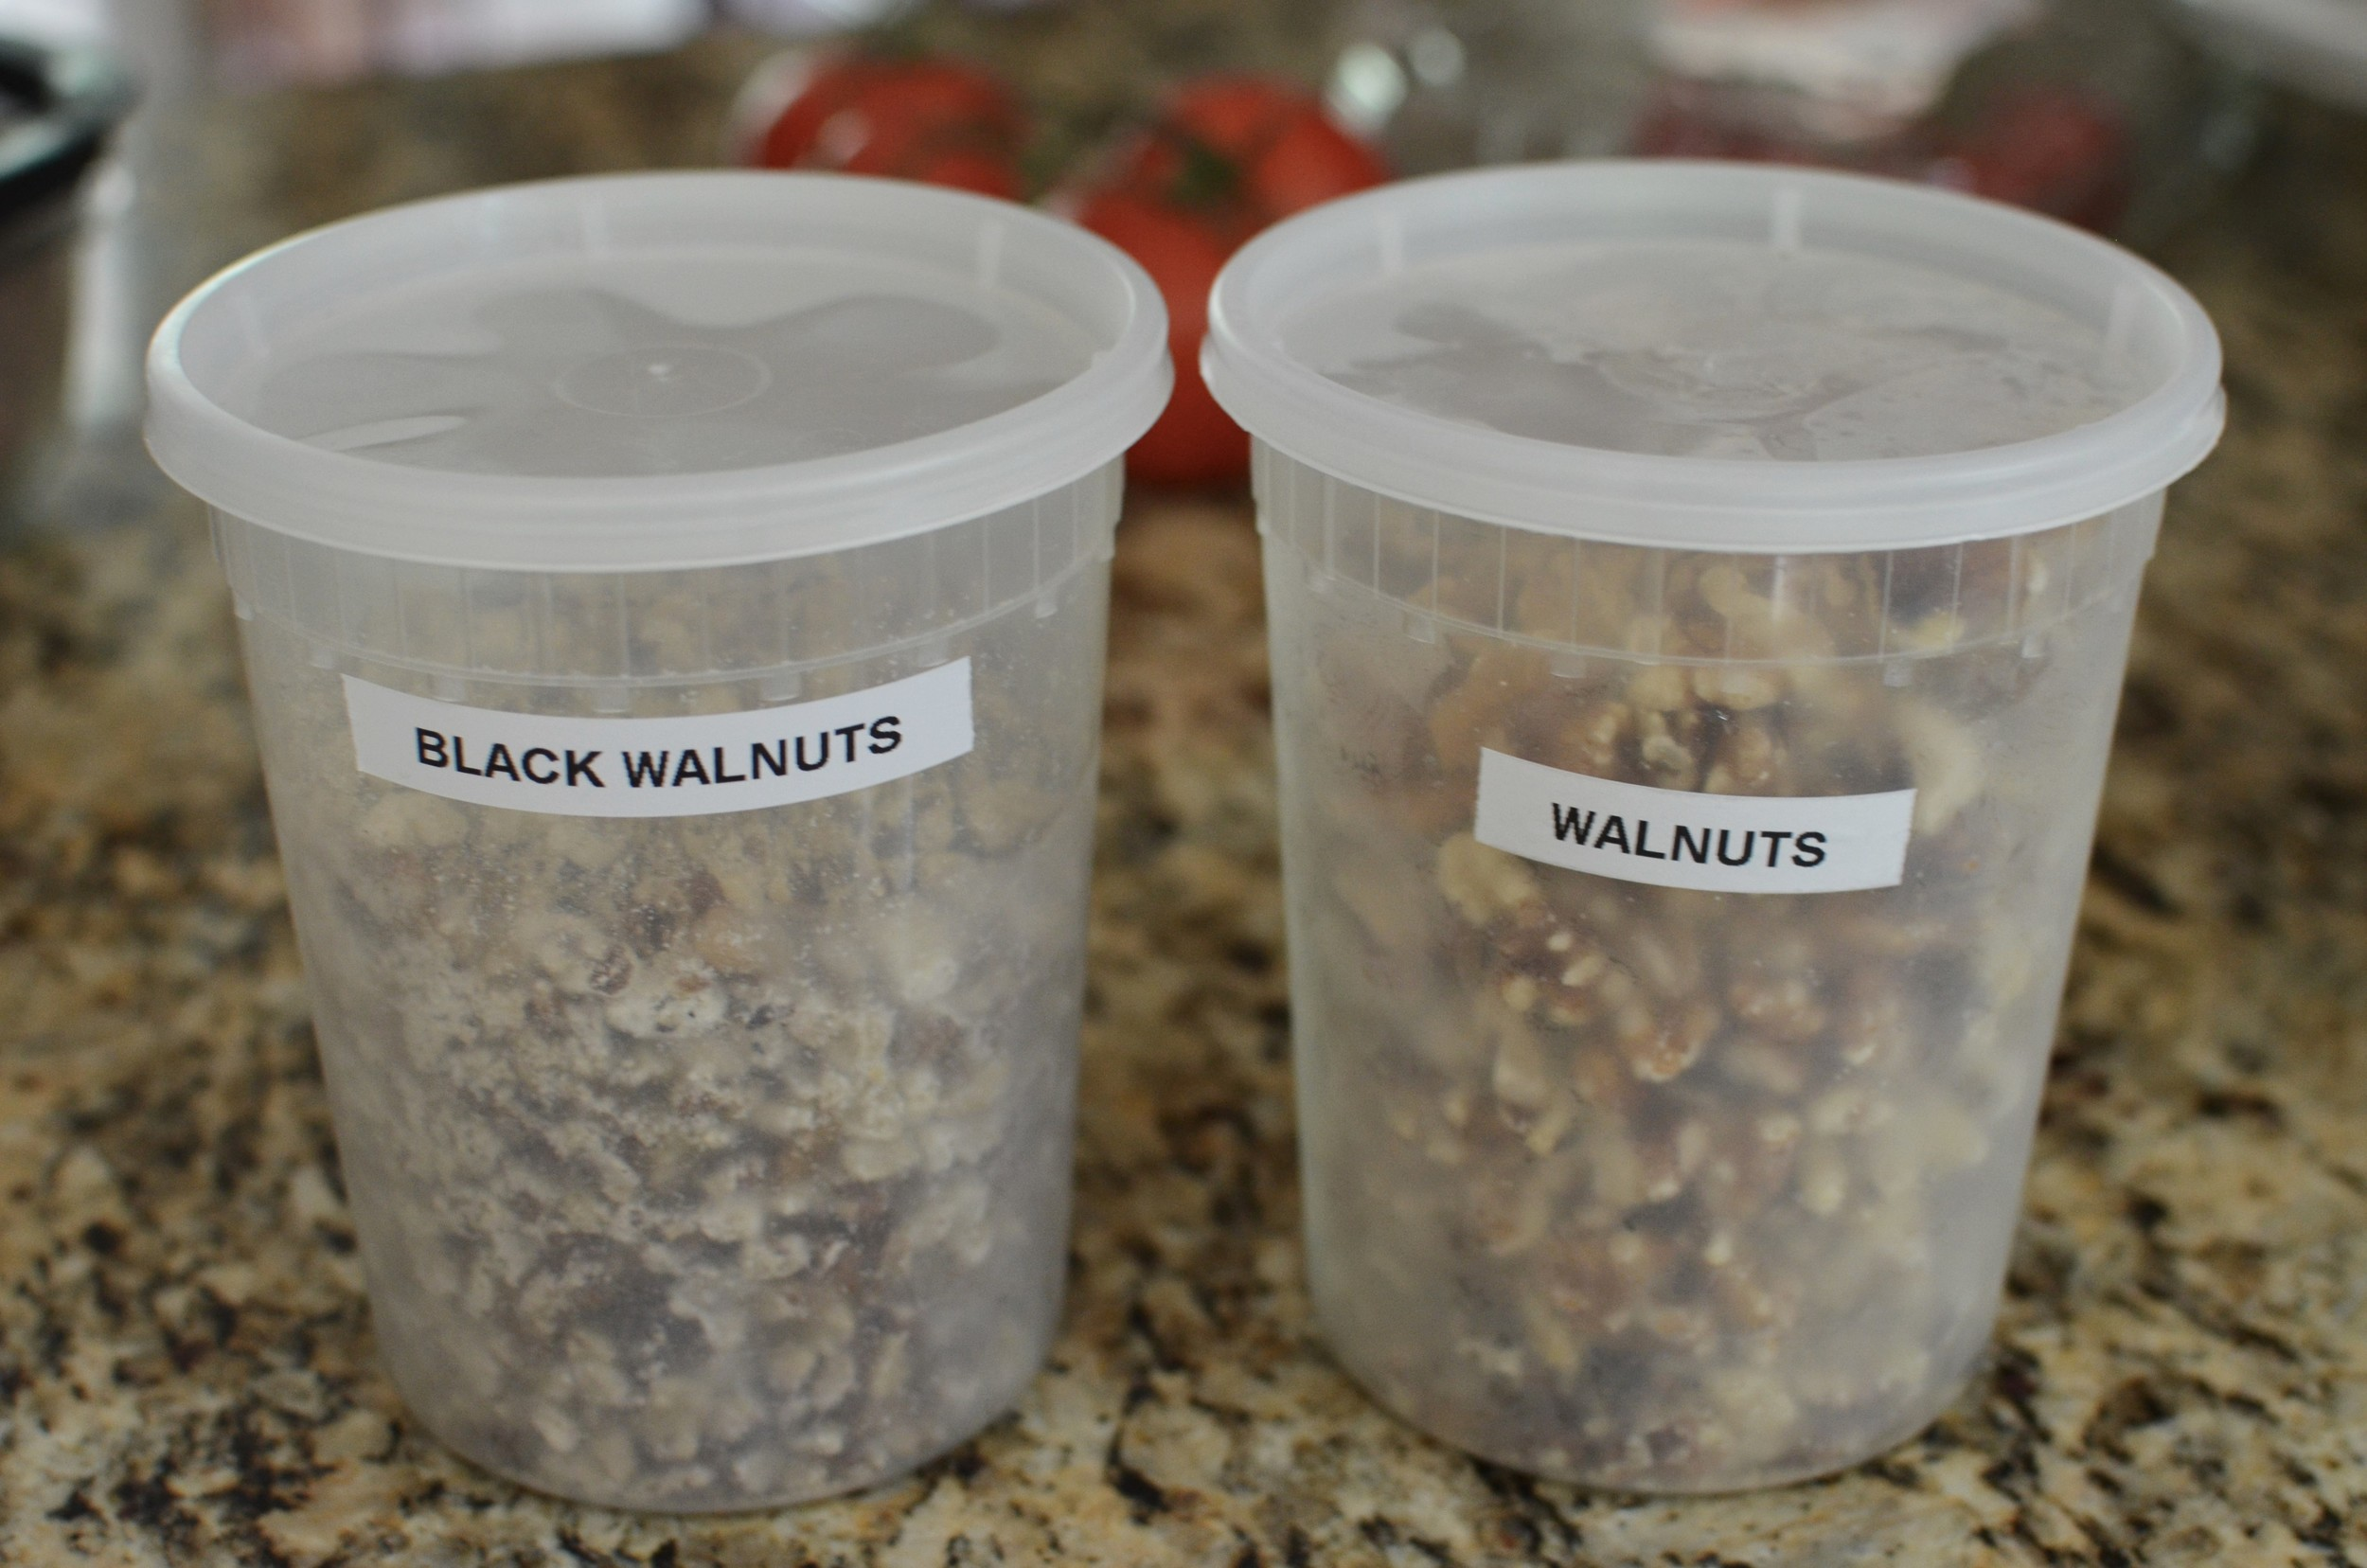 This recipe calls for English walnuts, but I think black walnuts taste amazingwith chocolate so my plan was to make a half a batch with each.